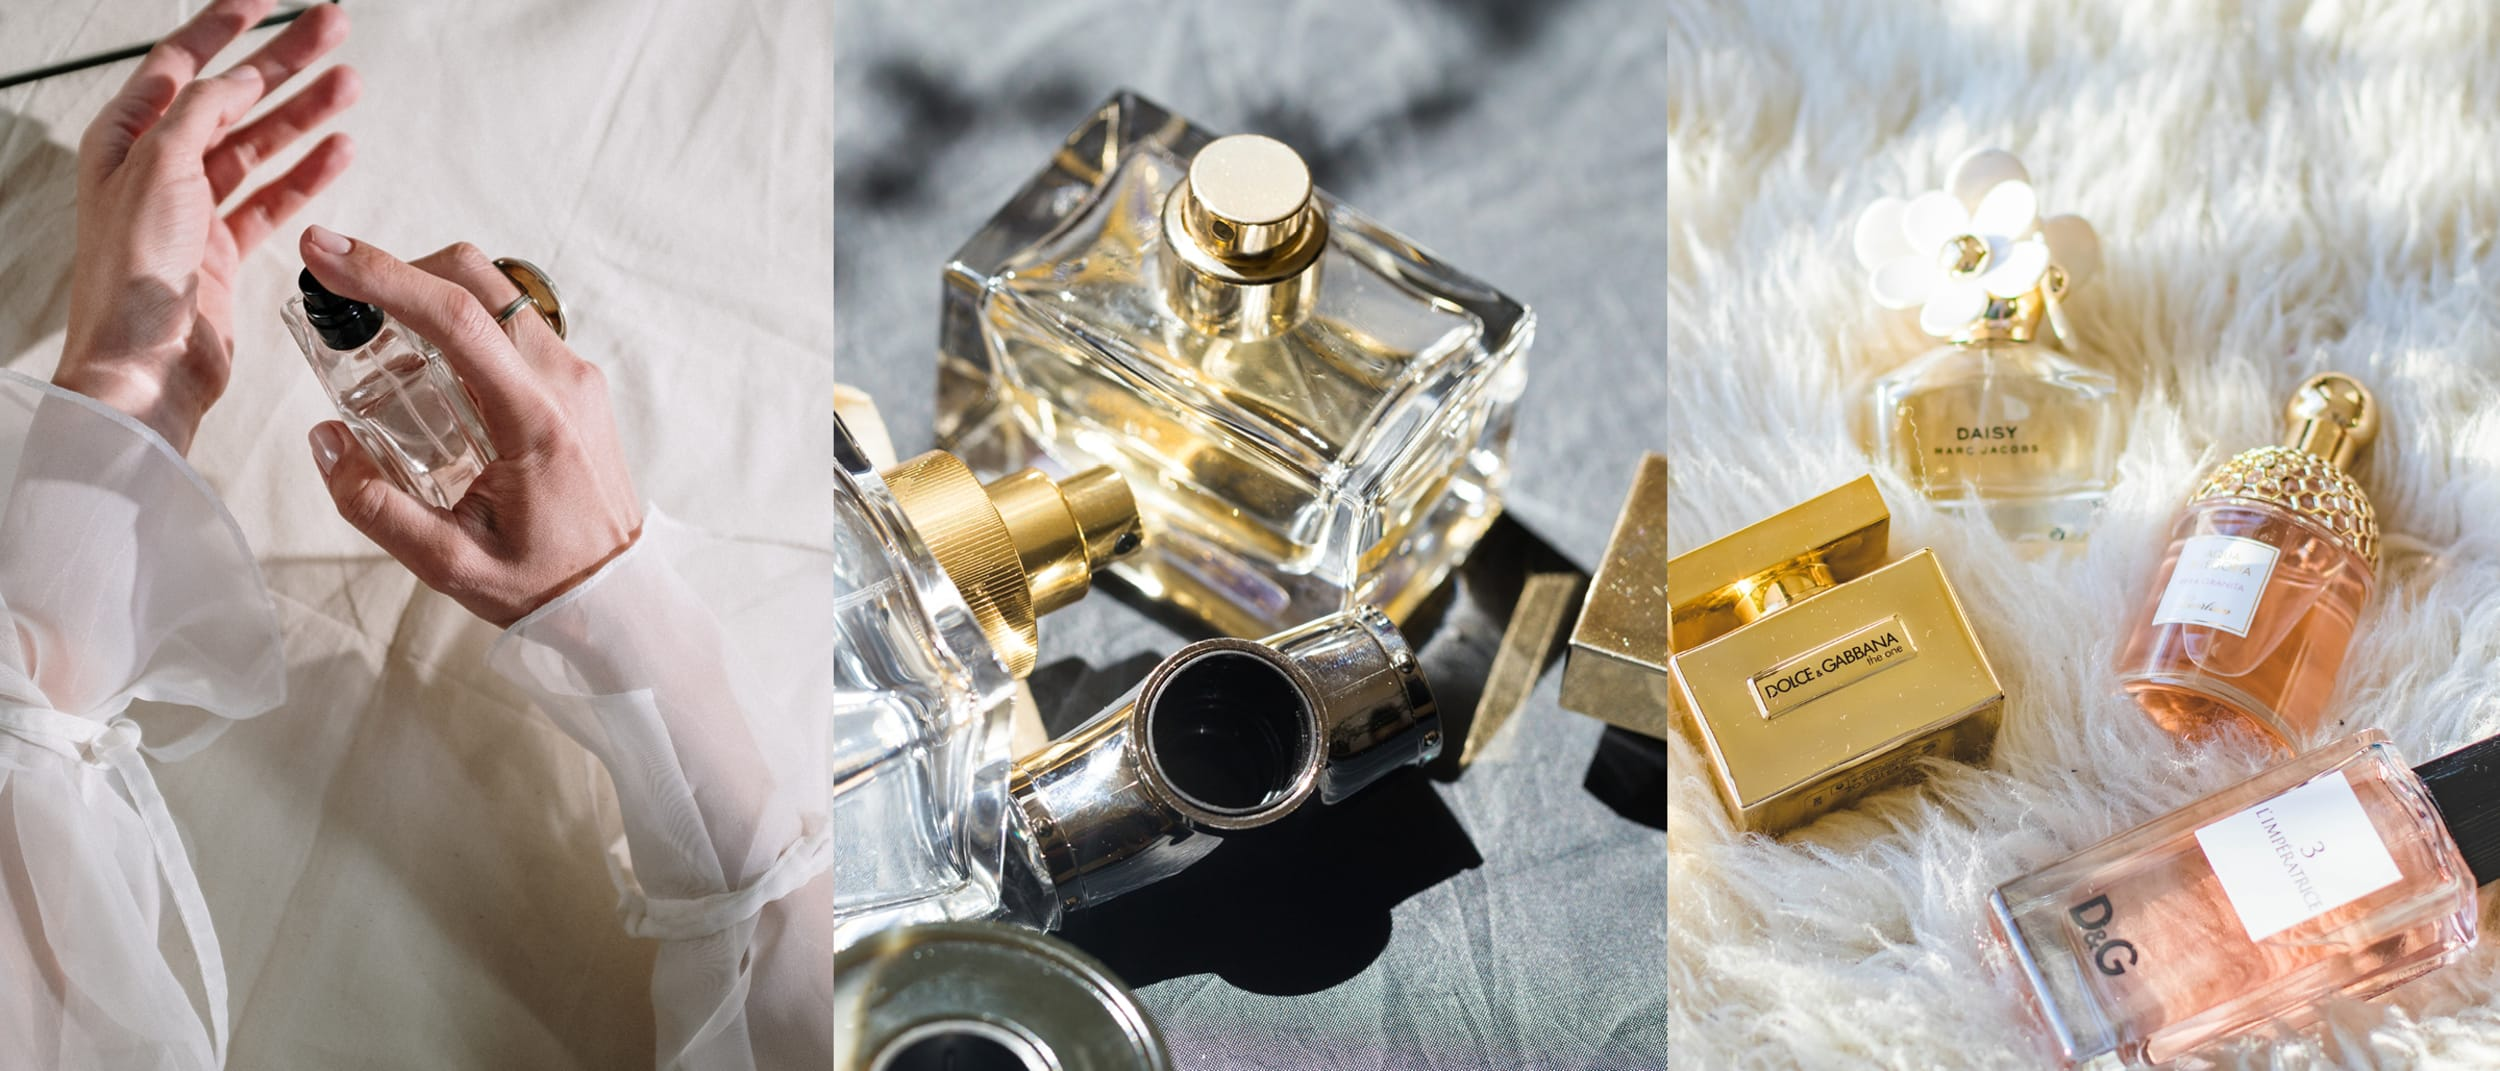 Spritz spritz! Find the perfect fragrance this spring